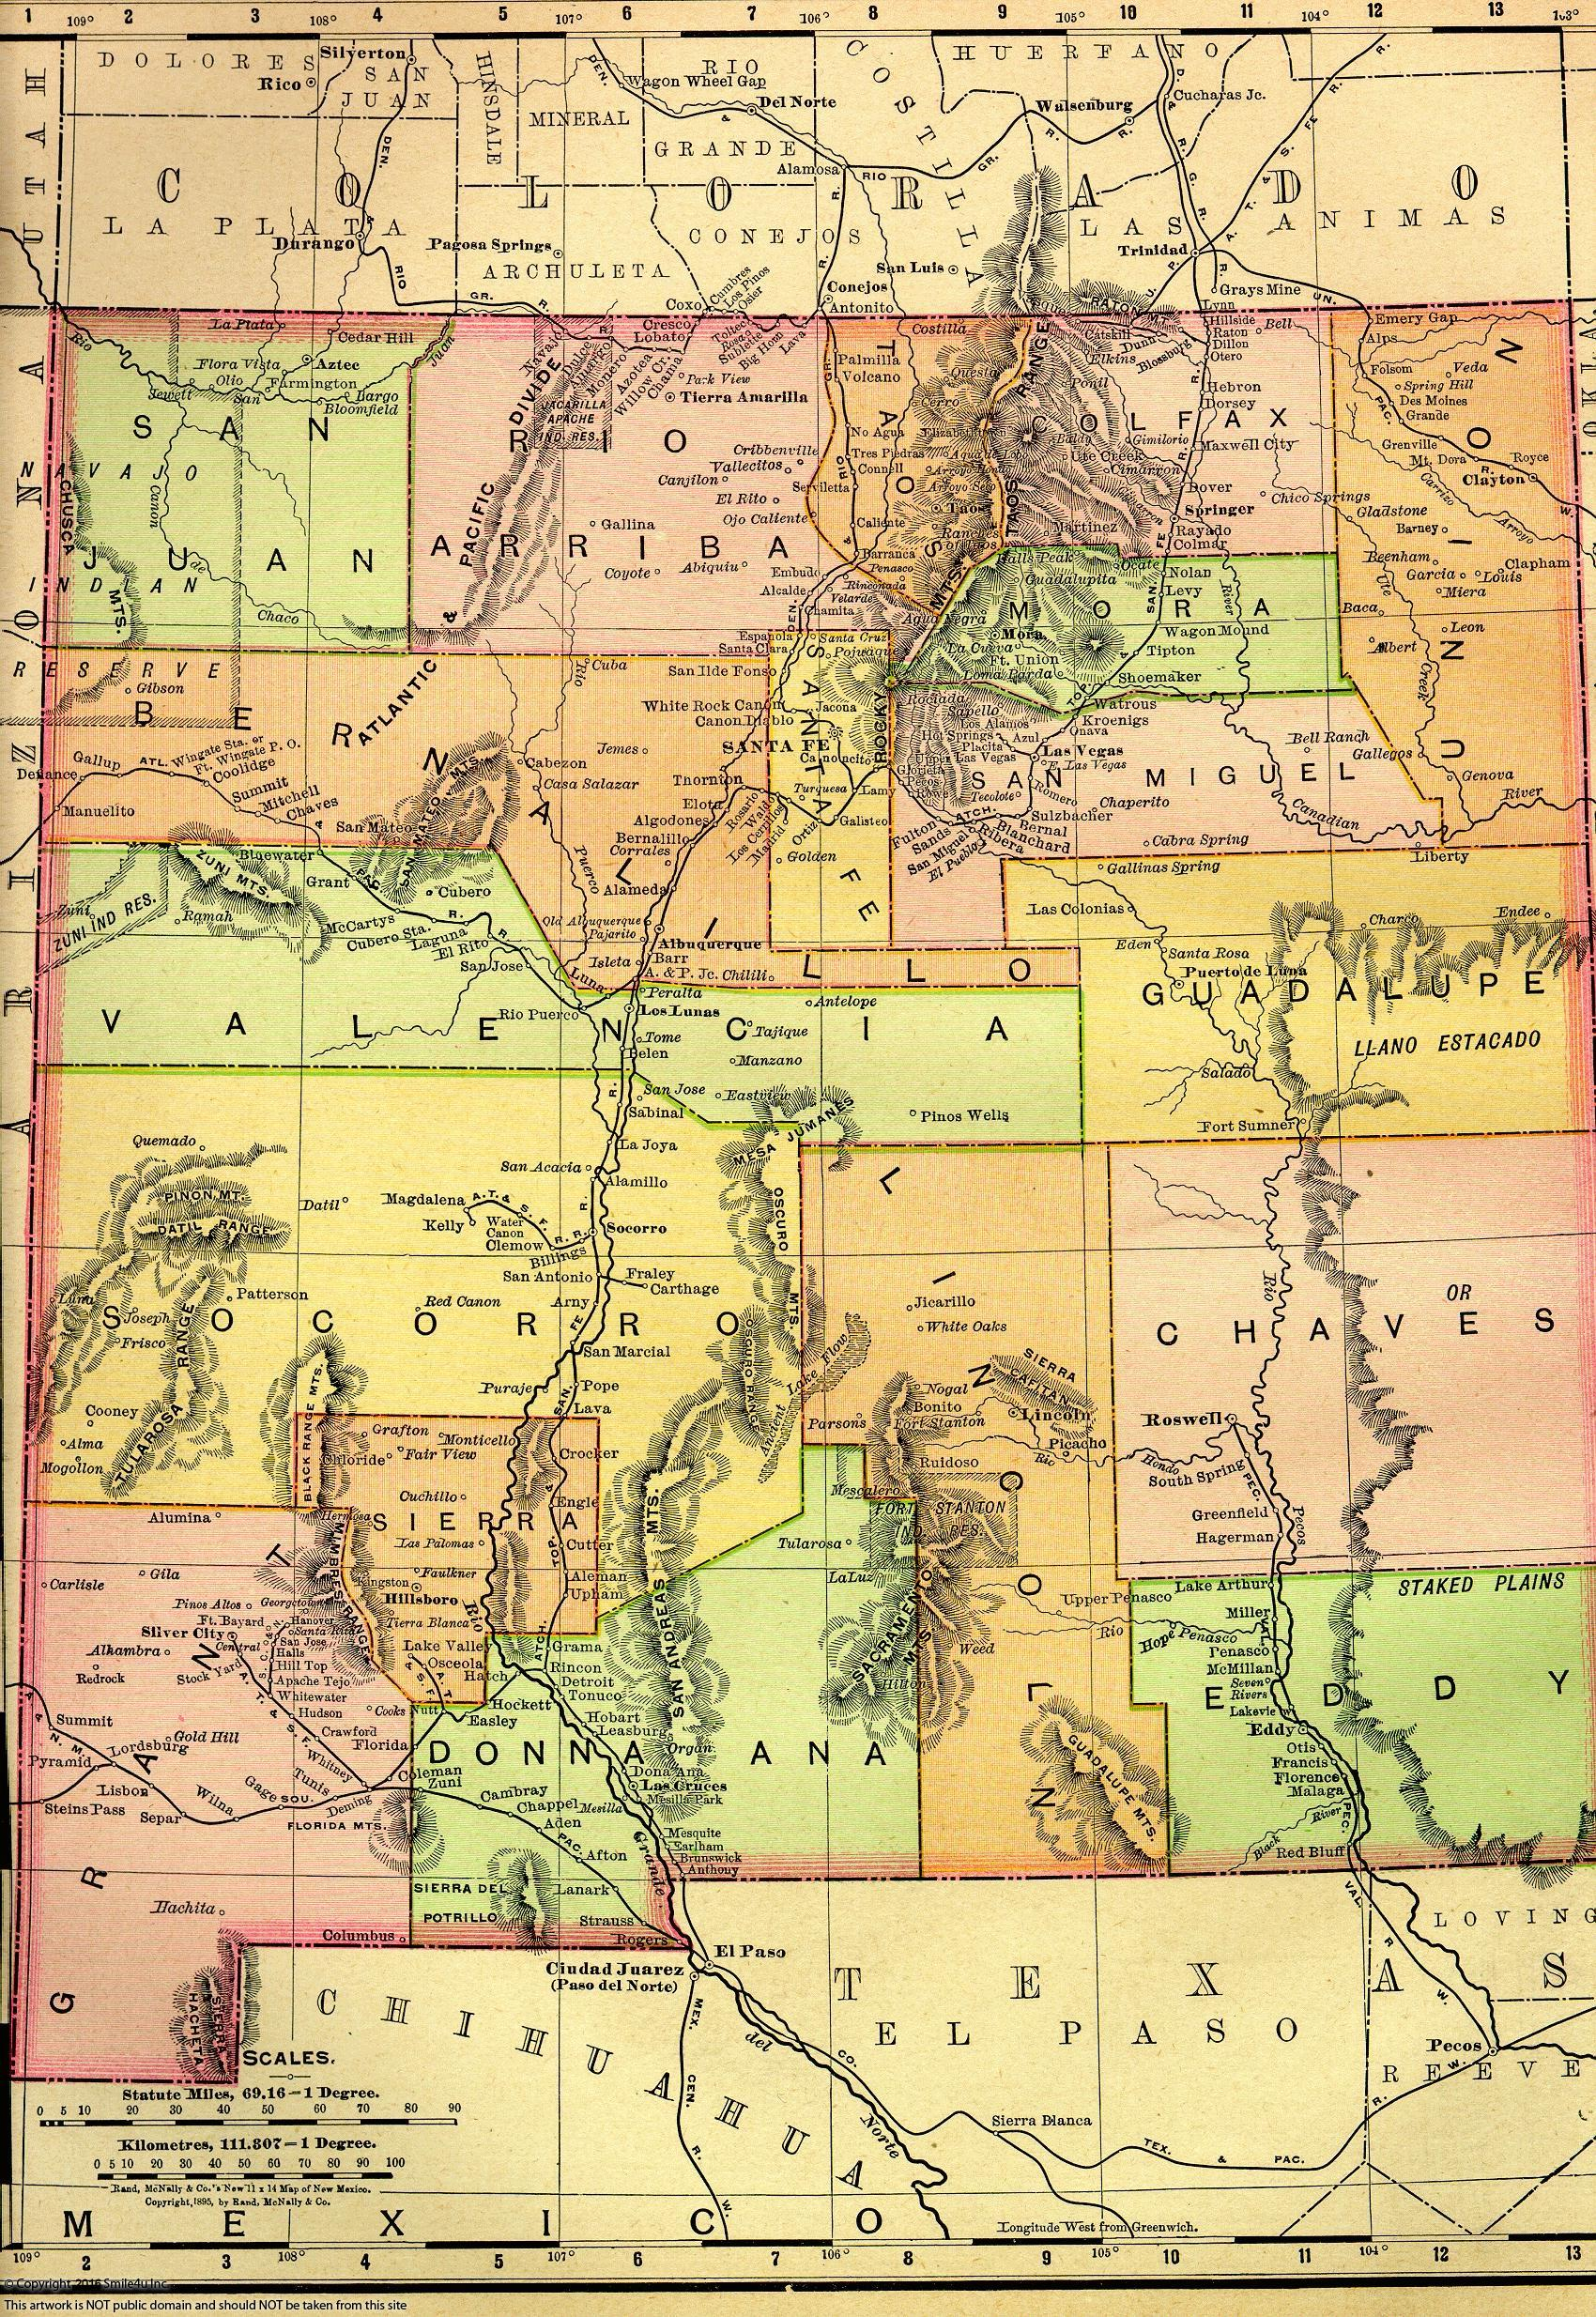 654758_watermarked_New Mexico State Map in 1895.jpg